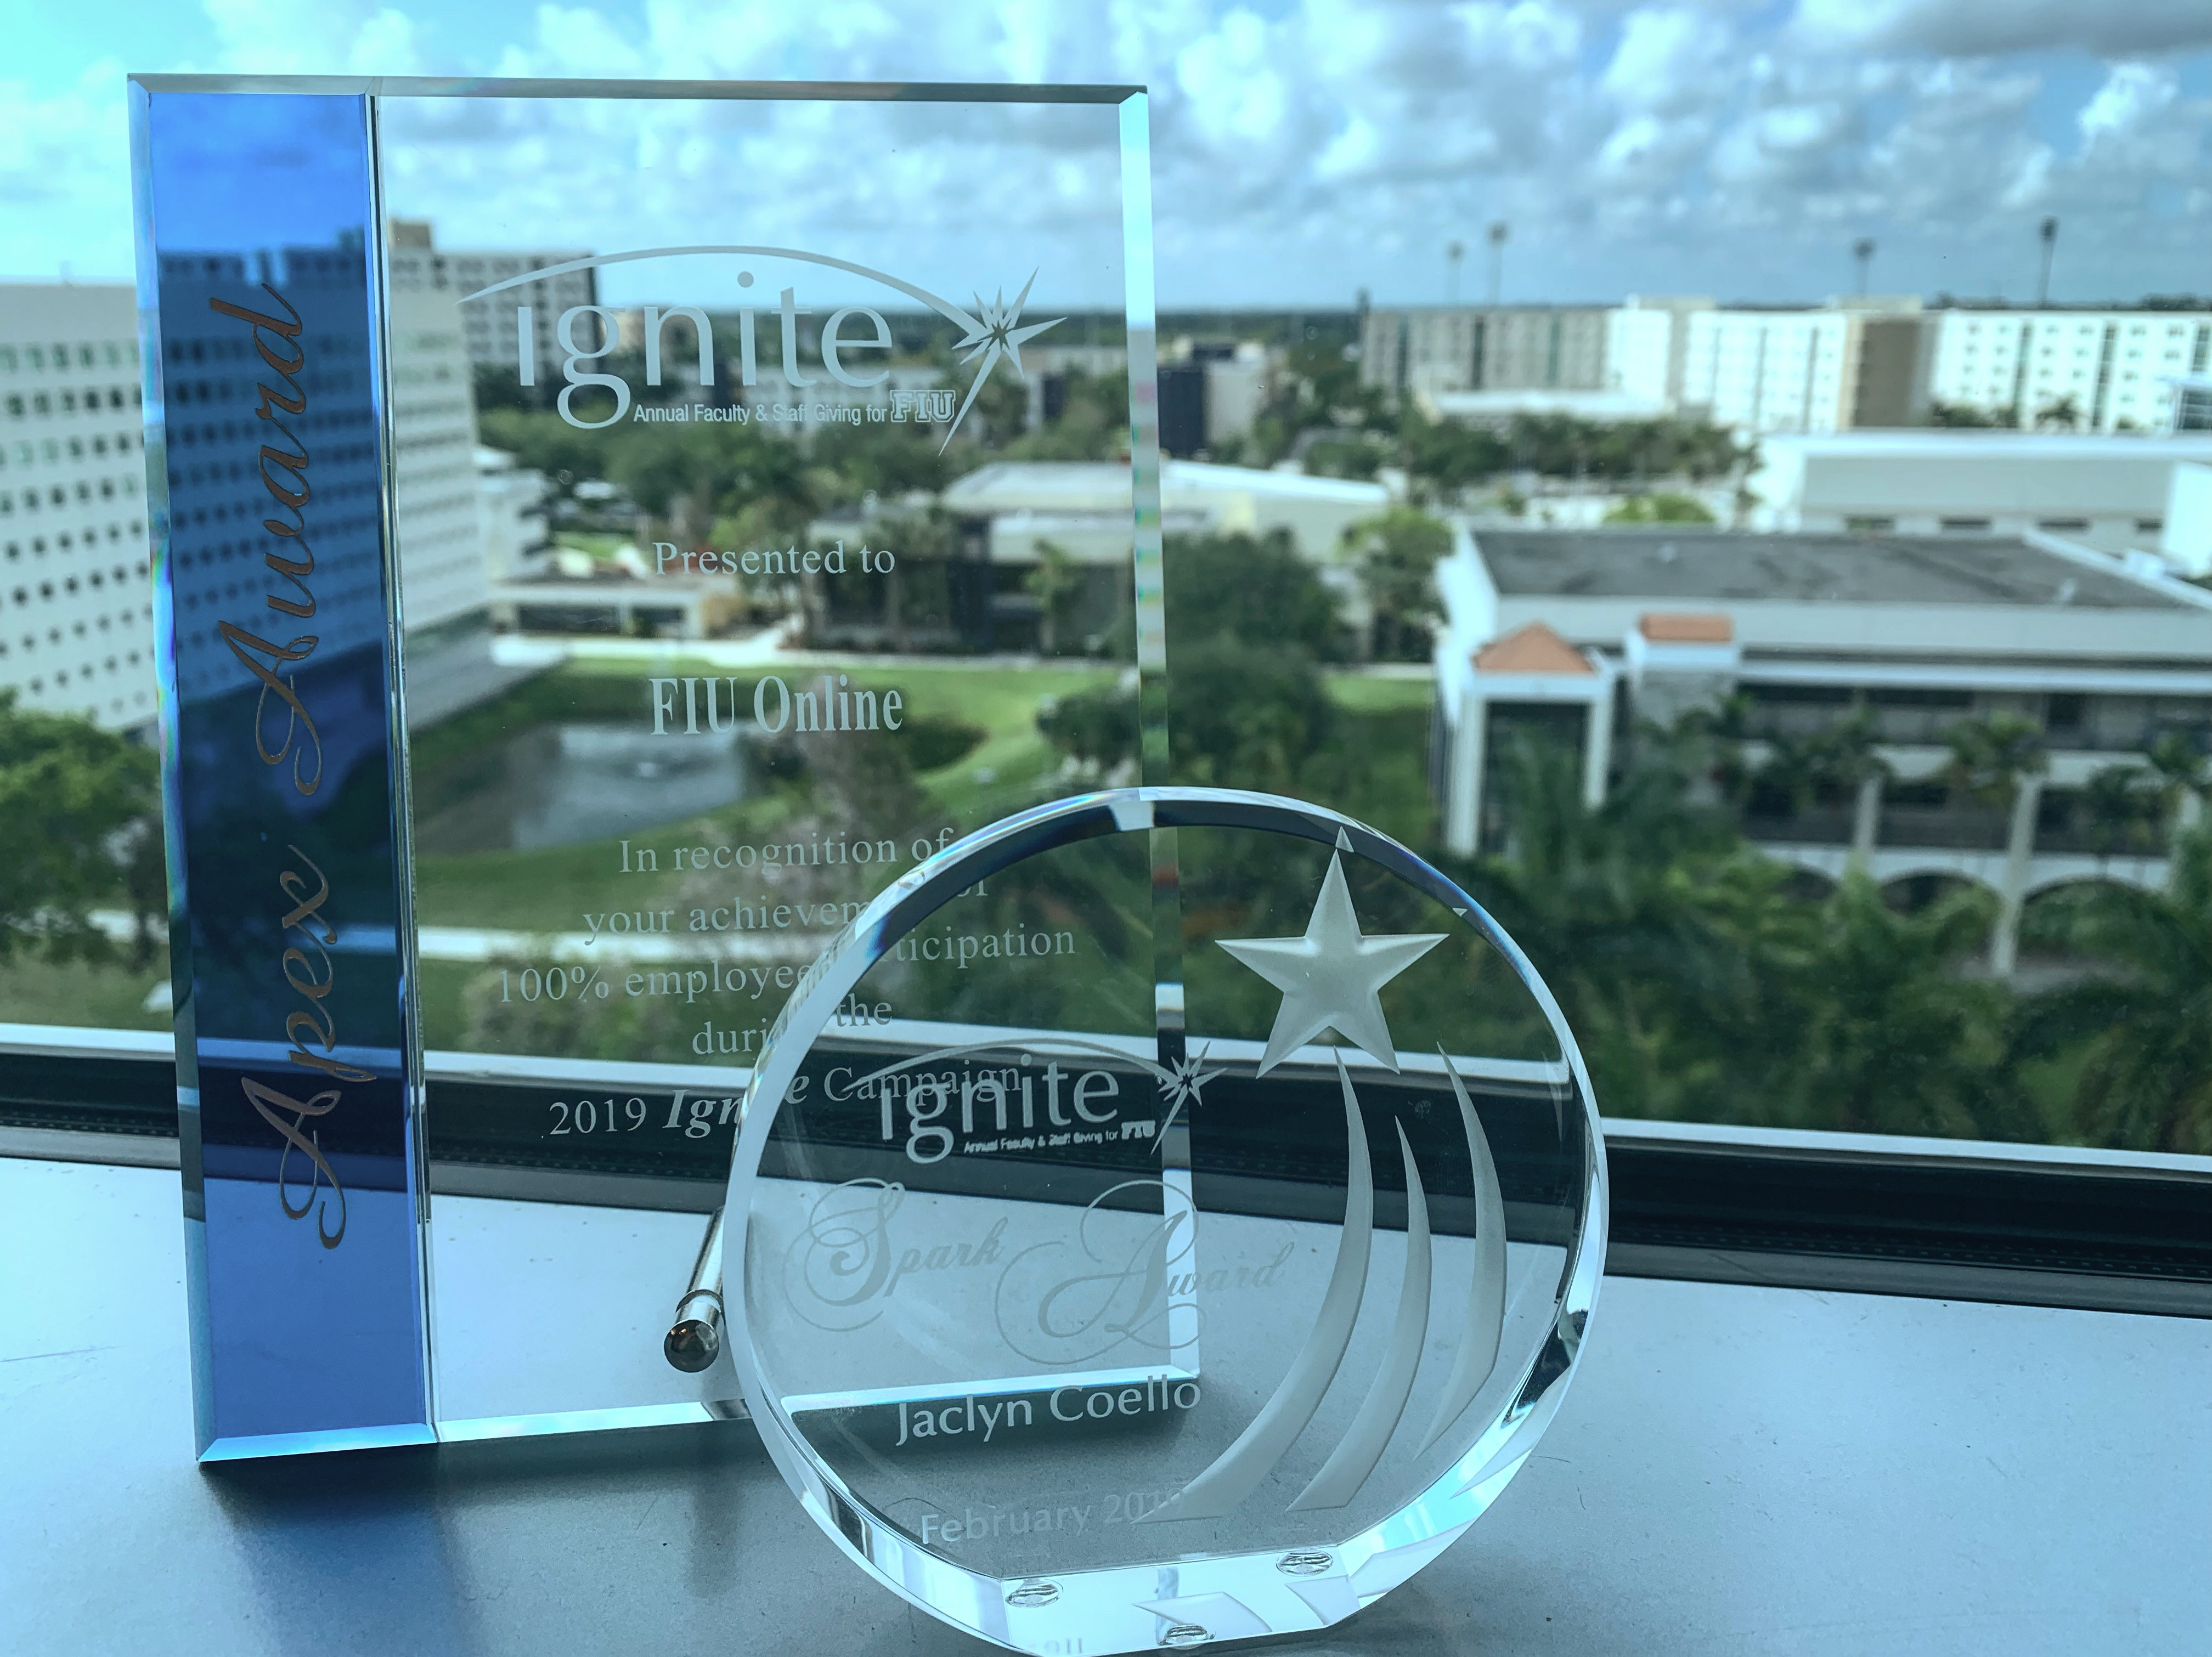 FIU Online Ignite Apex & Spark Awards